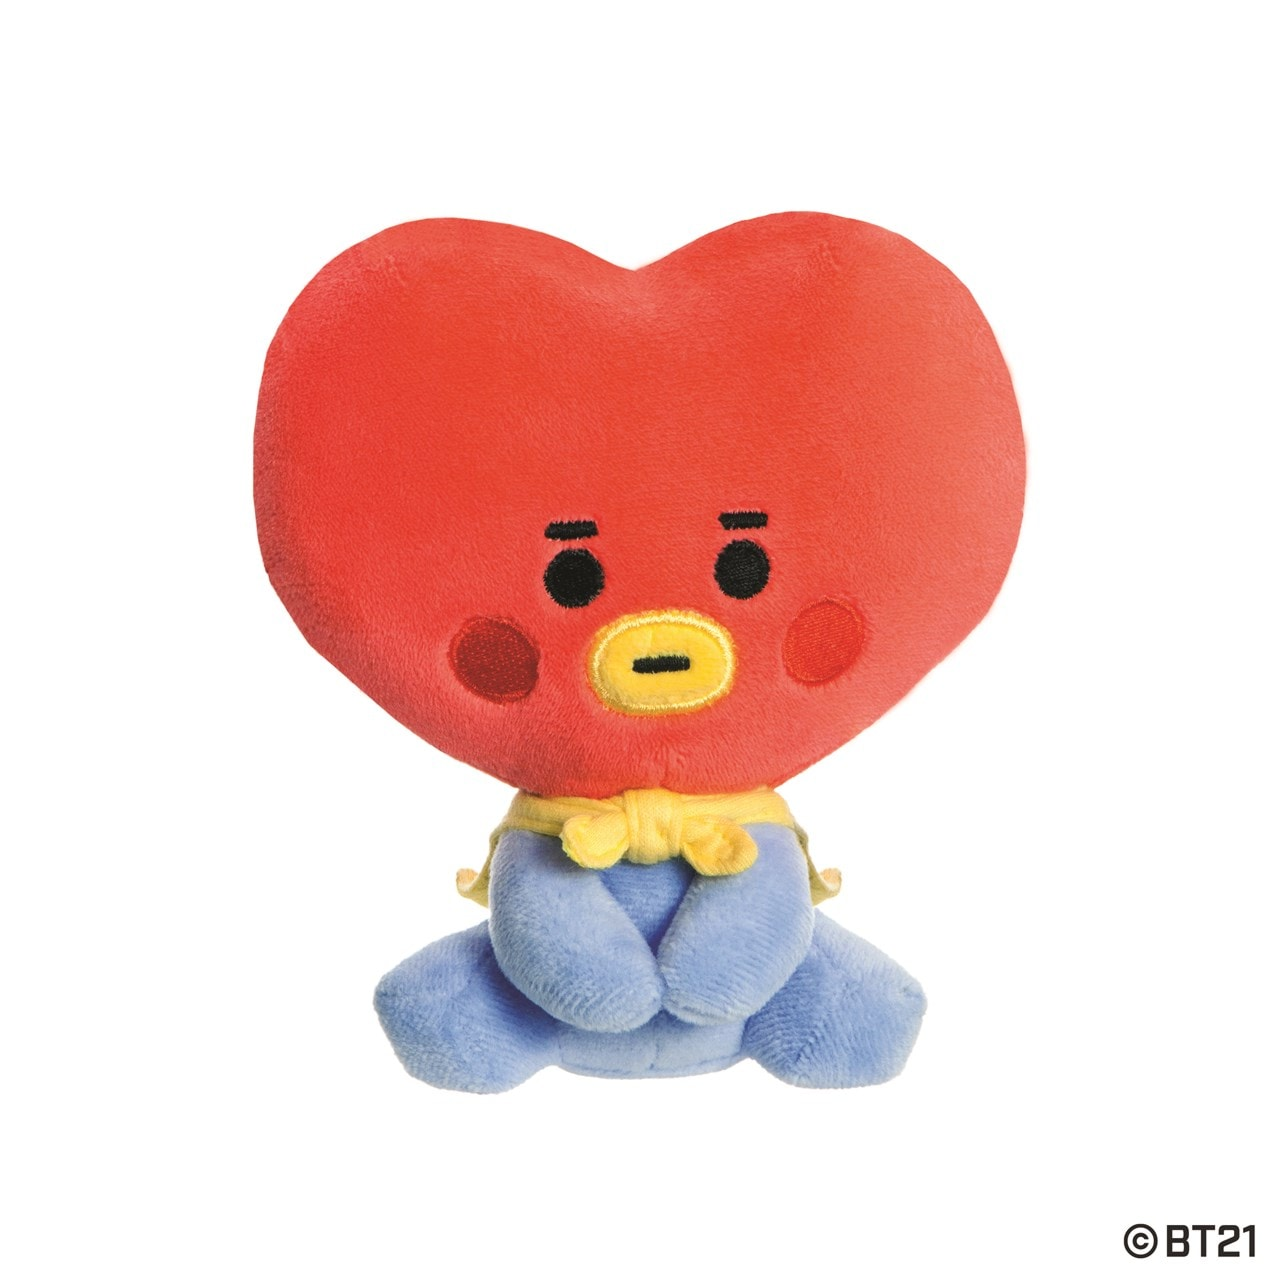 Tata Baby: BT21 Small Soft Toy - 1